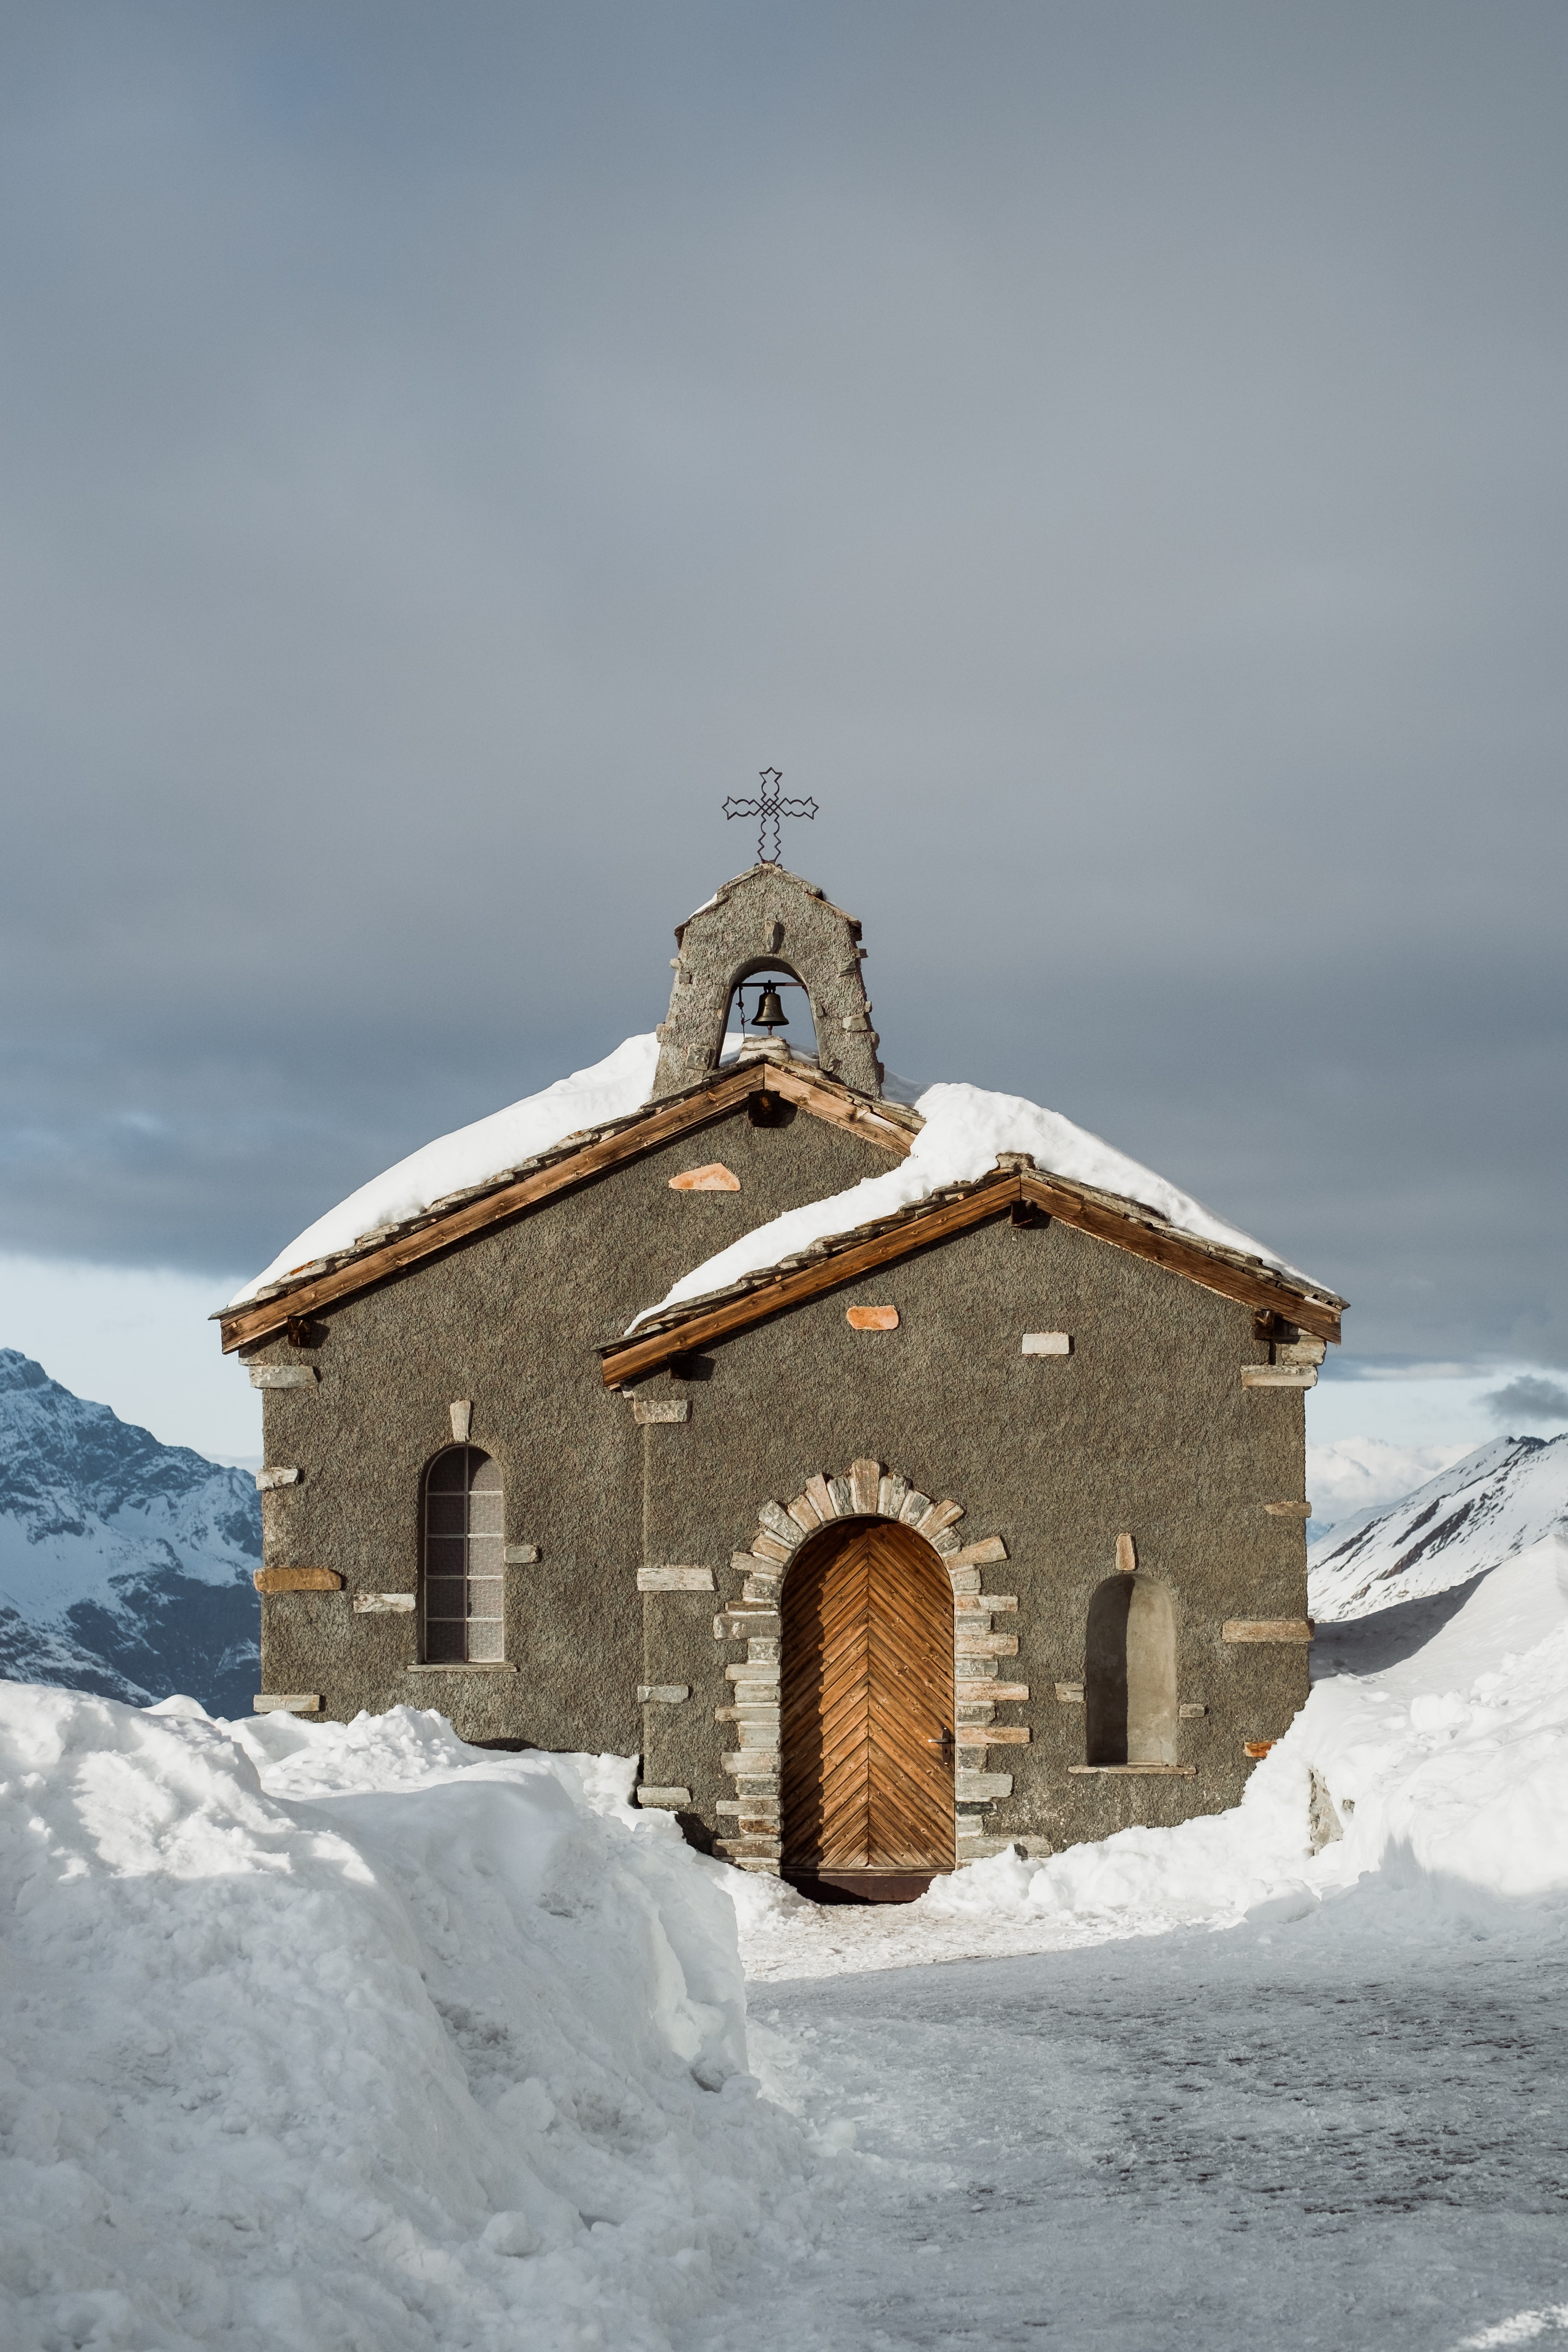 A small chapel in the middle of a snowy wasteland